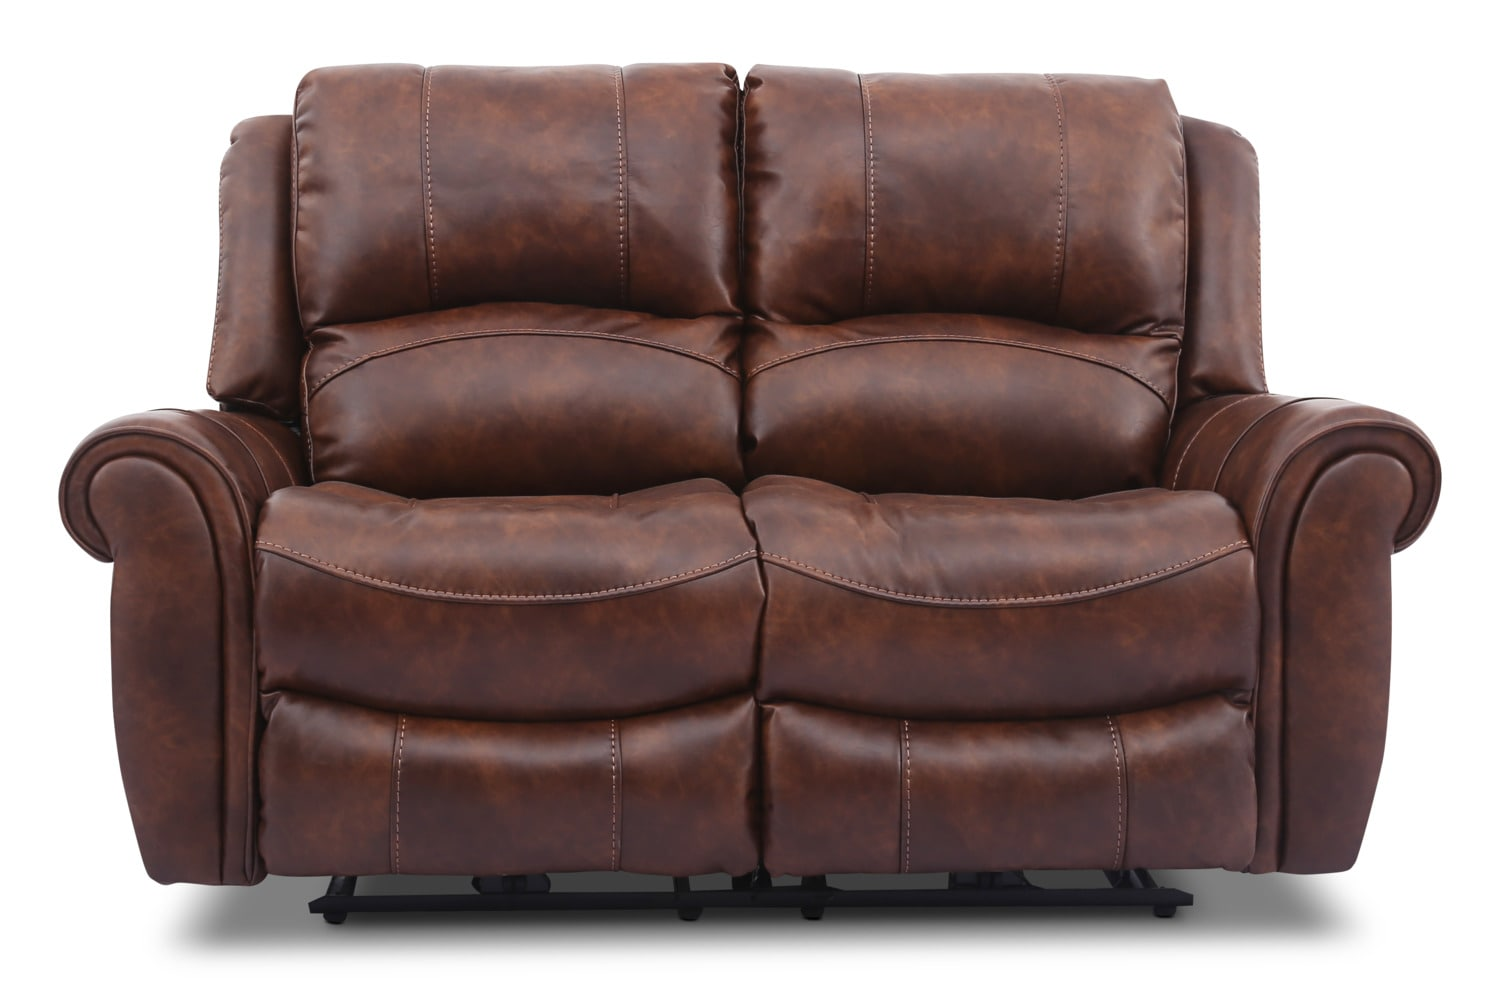 Kane Leather-Look Fabric Power Reclining Loveseat – Pecan